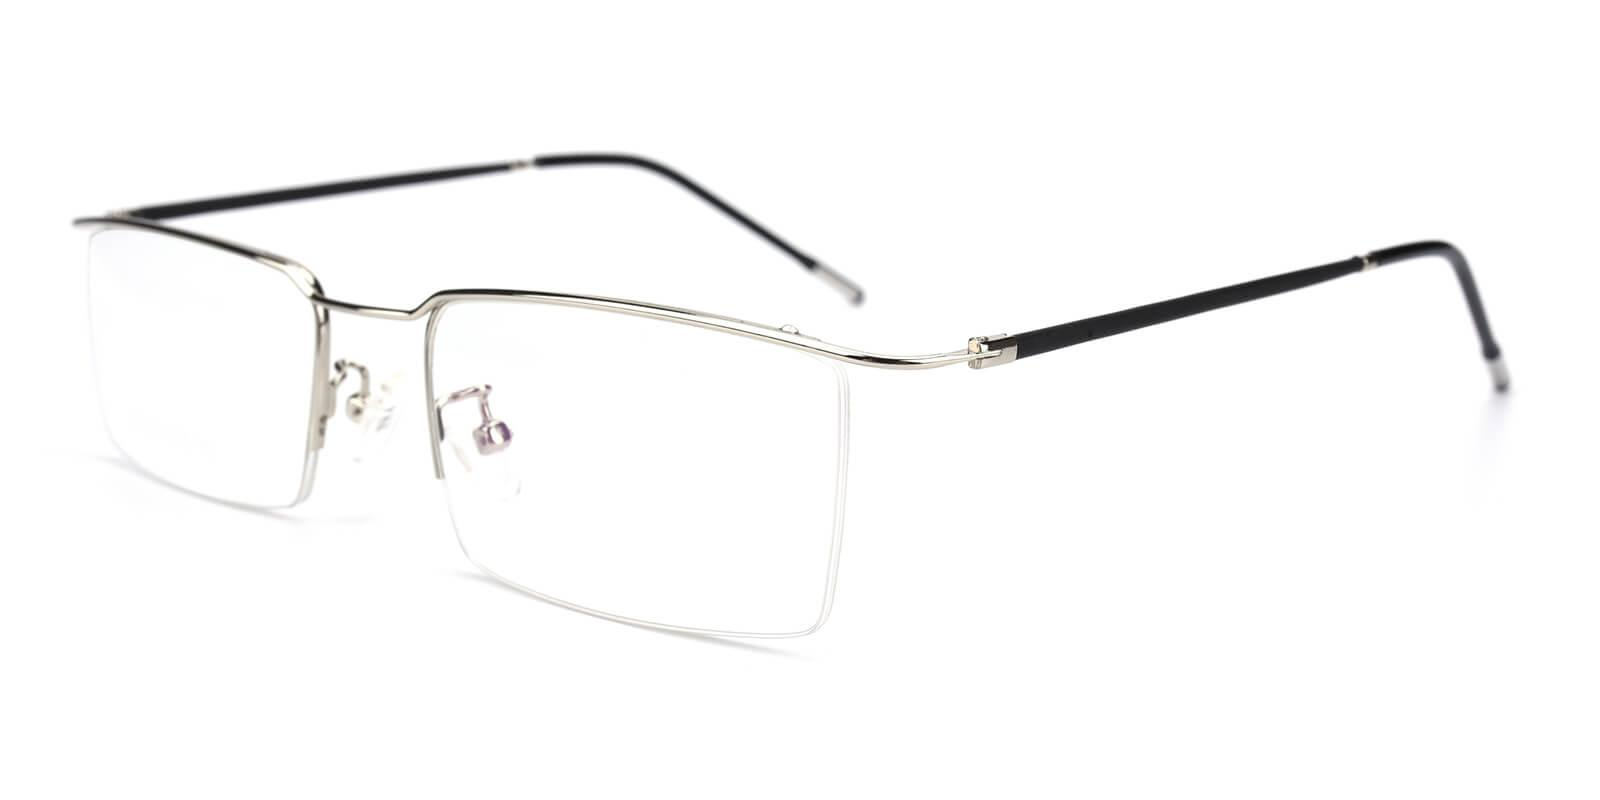 Wit-Silver-Rectangle-Metal-Eyeglasses-additional1